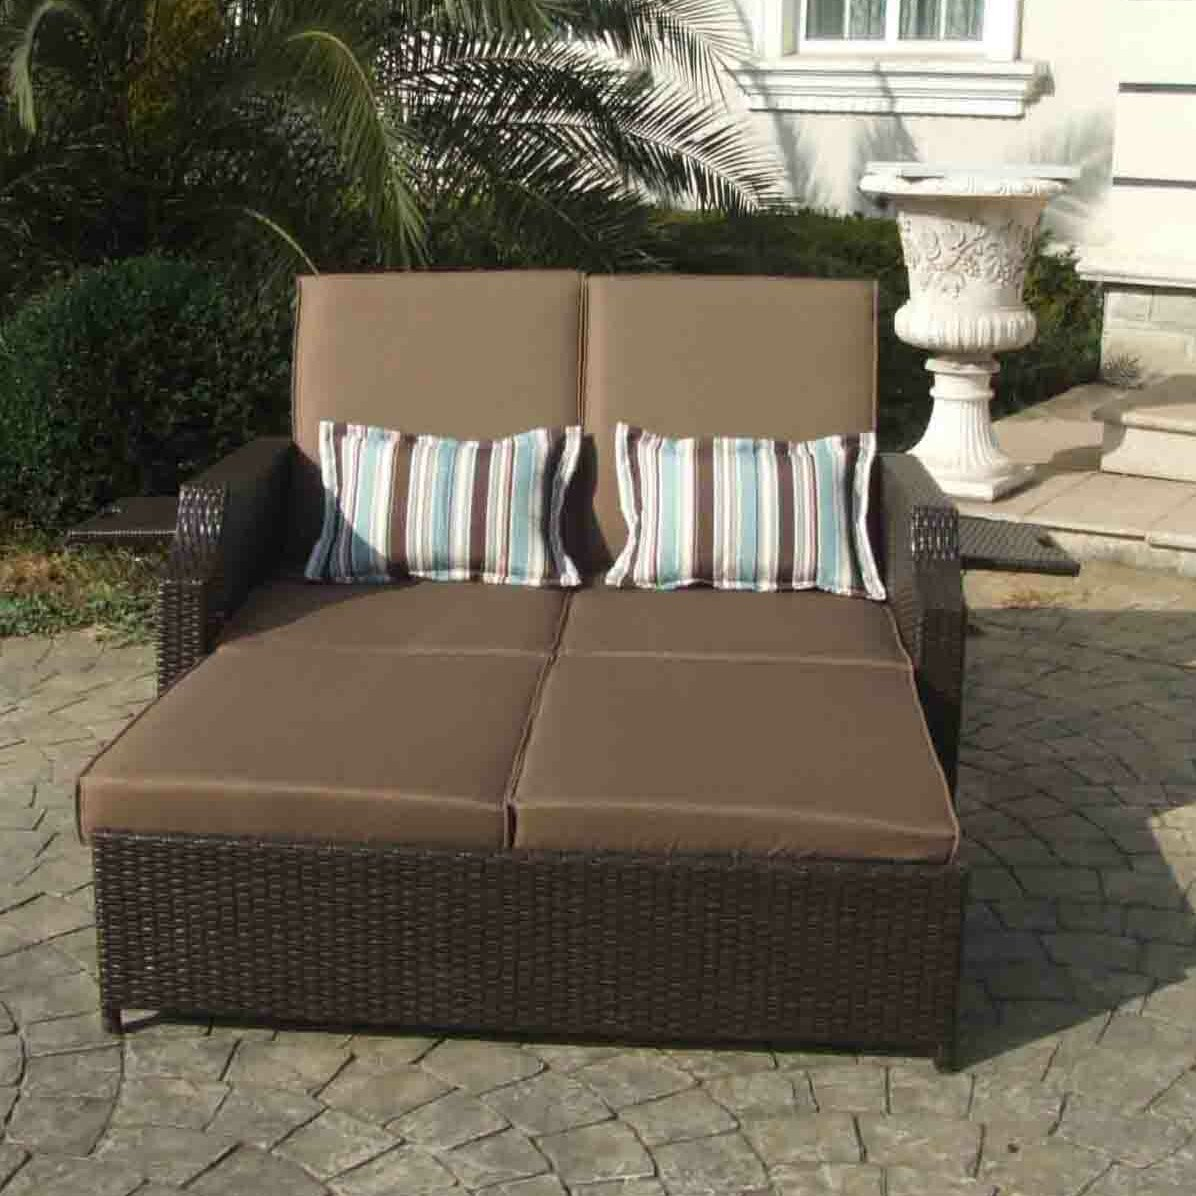 Double chaise lounge with cushions wayfair for Chaise double lounge